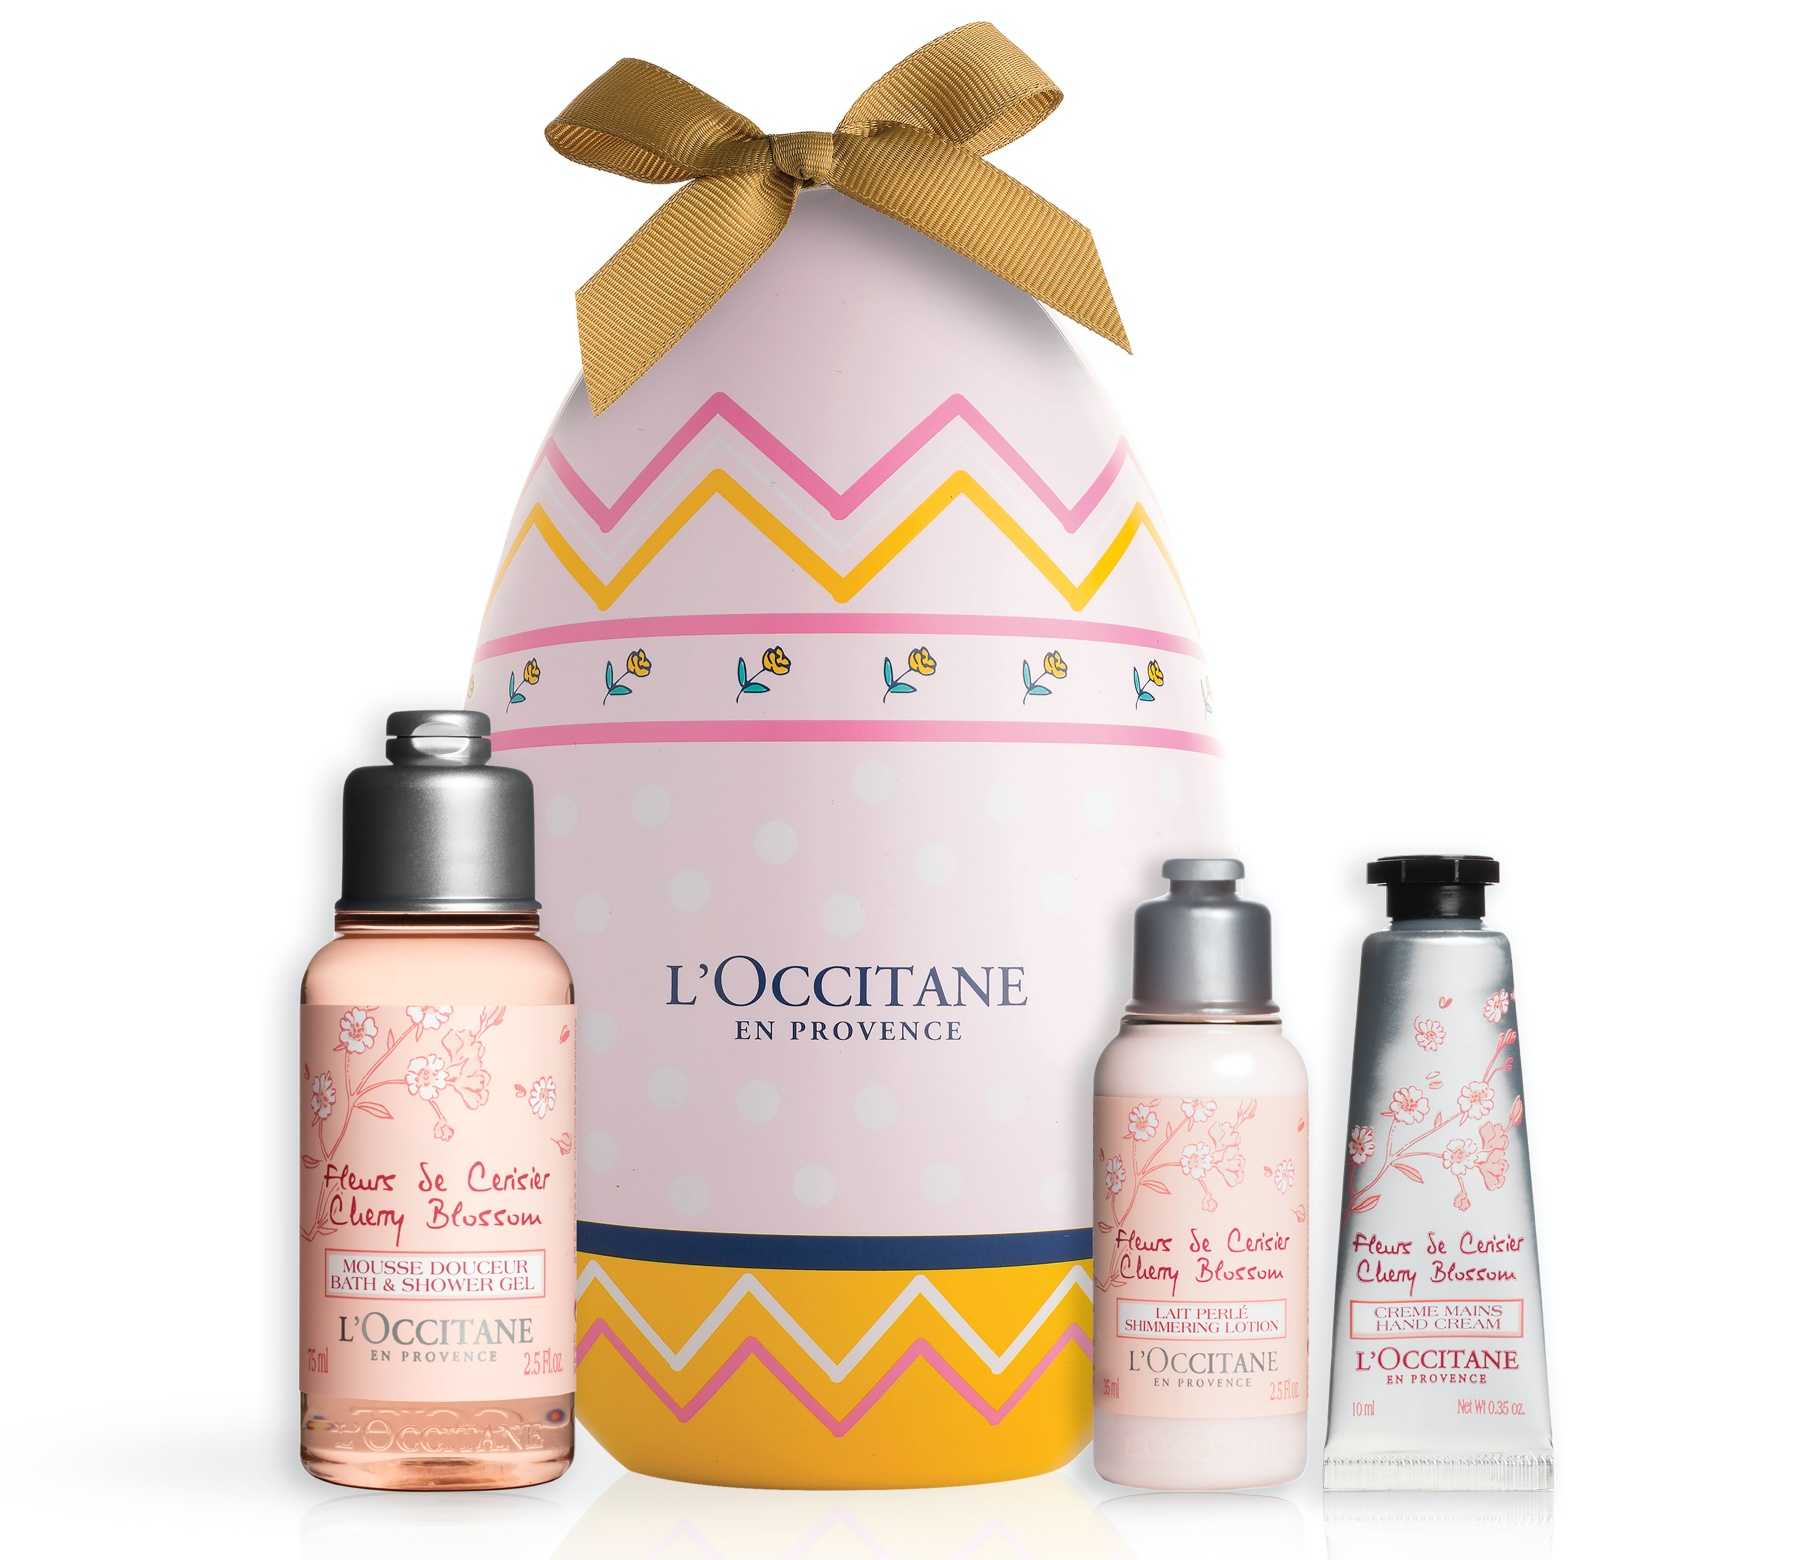 L'OCCITANE Cherry Blossom Easter Egg with products